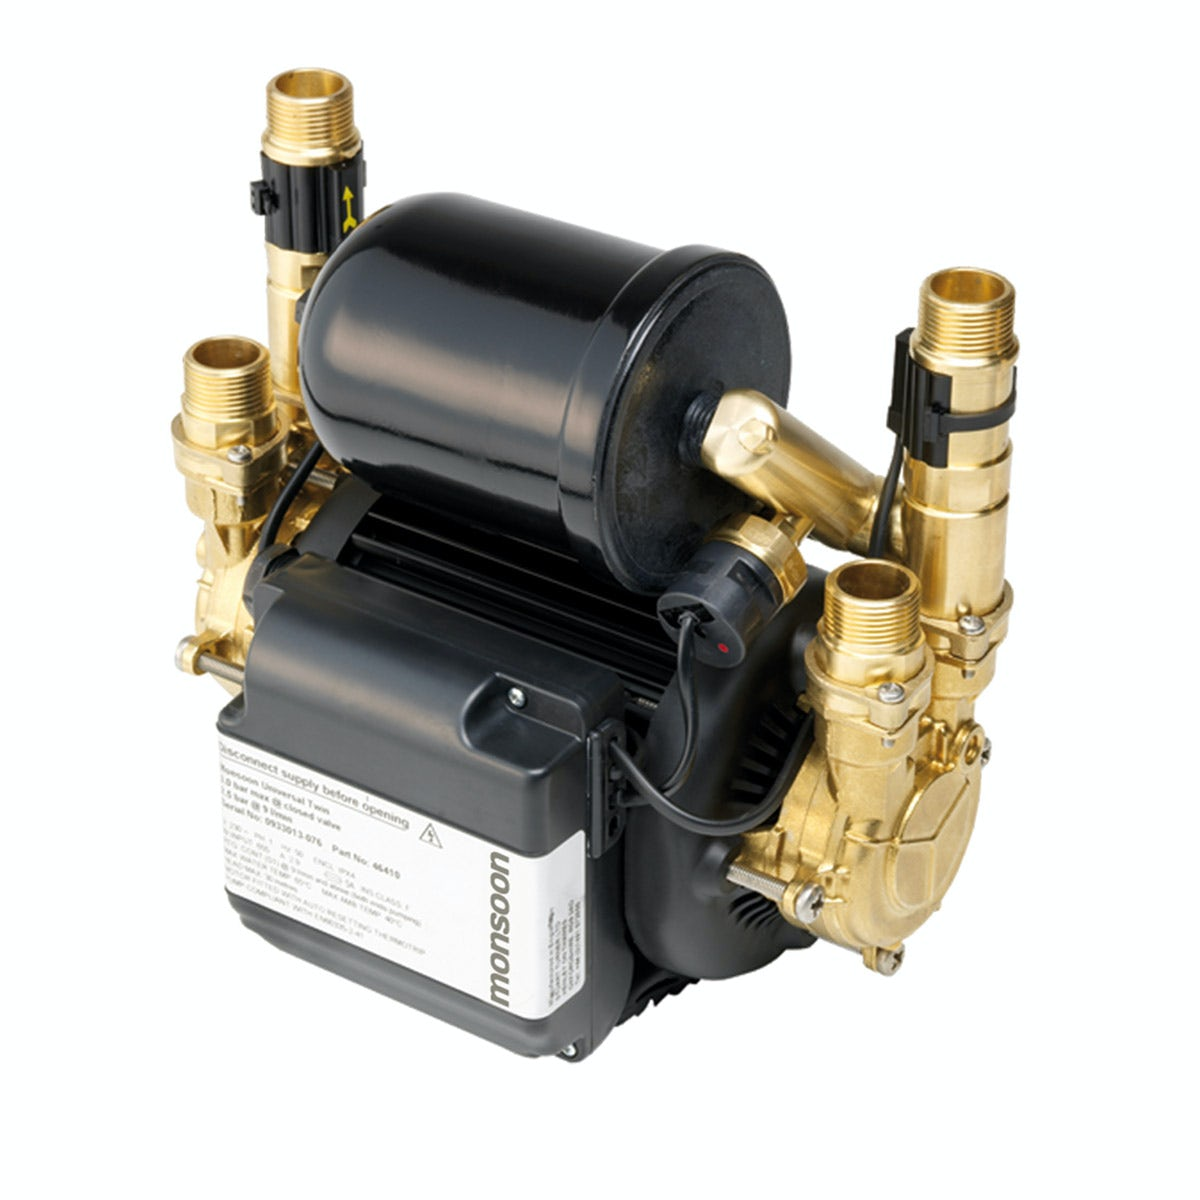 Stuart Turner Monsoon standard 3.0 bar twin shower pump